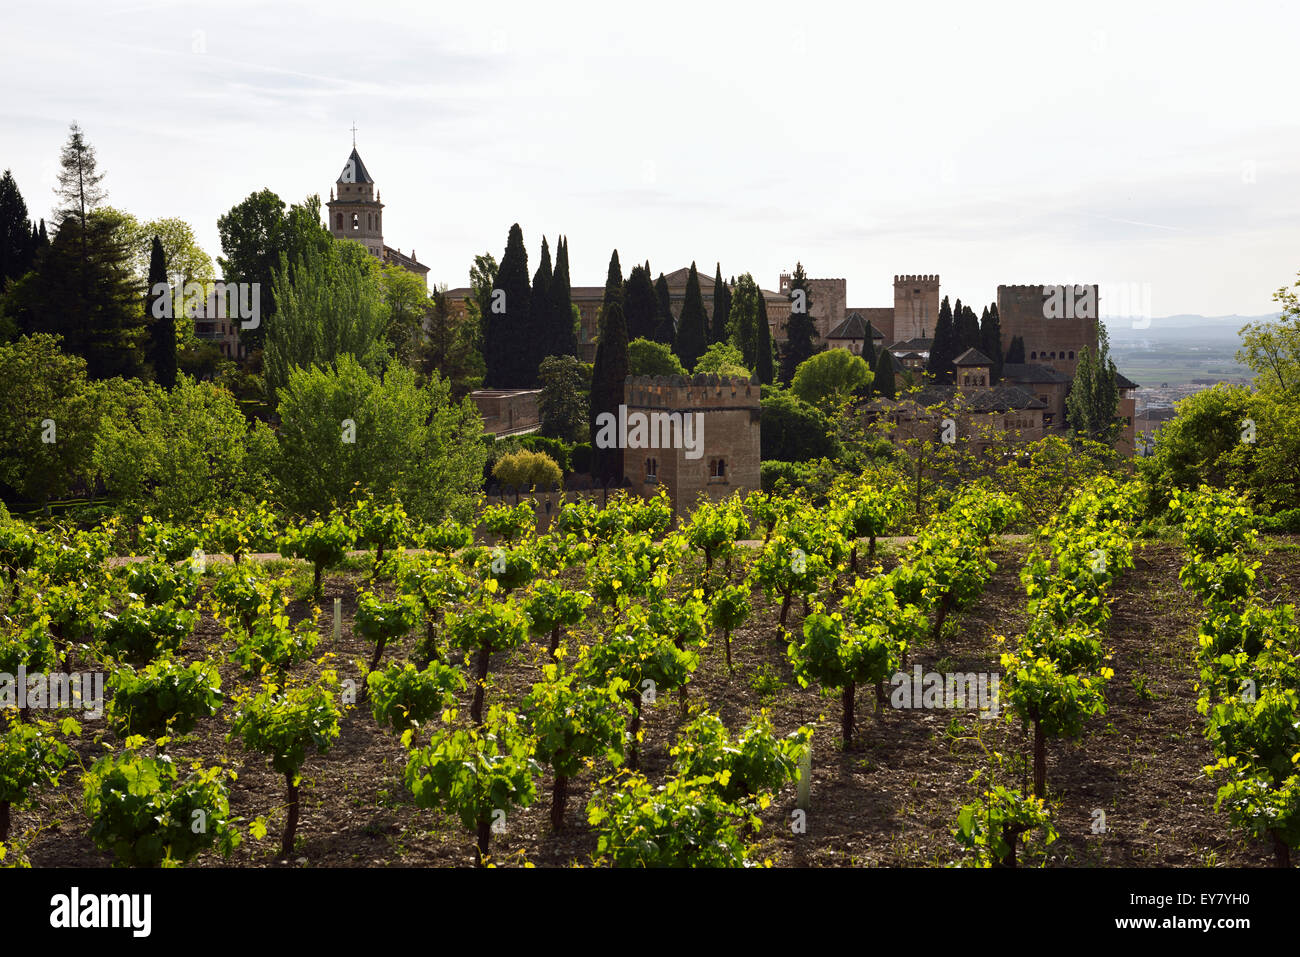 Generalife Vineyard overlooking Saint Mary belfry and Nesrid Palaces in fortified Alhambra complex Granada Spain - Stock Image